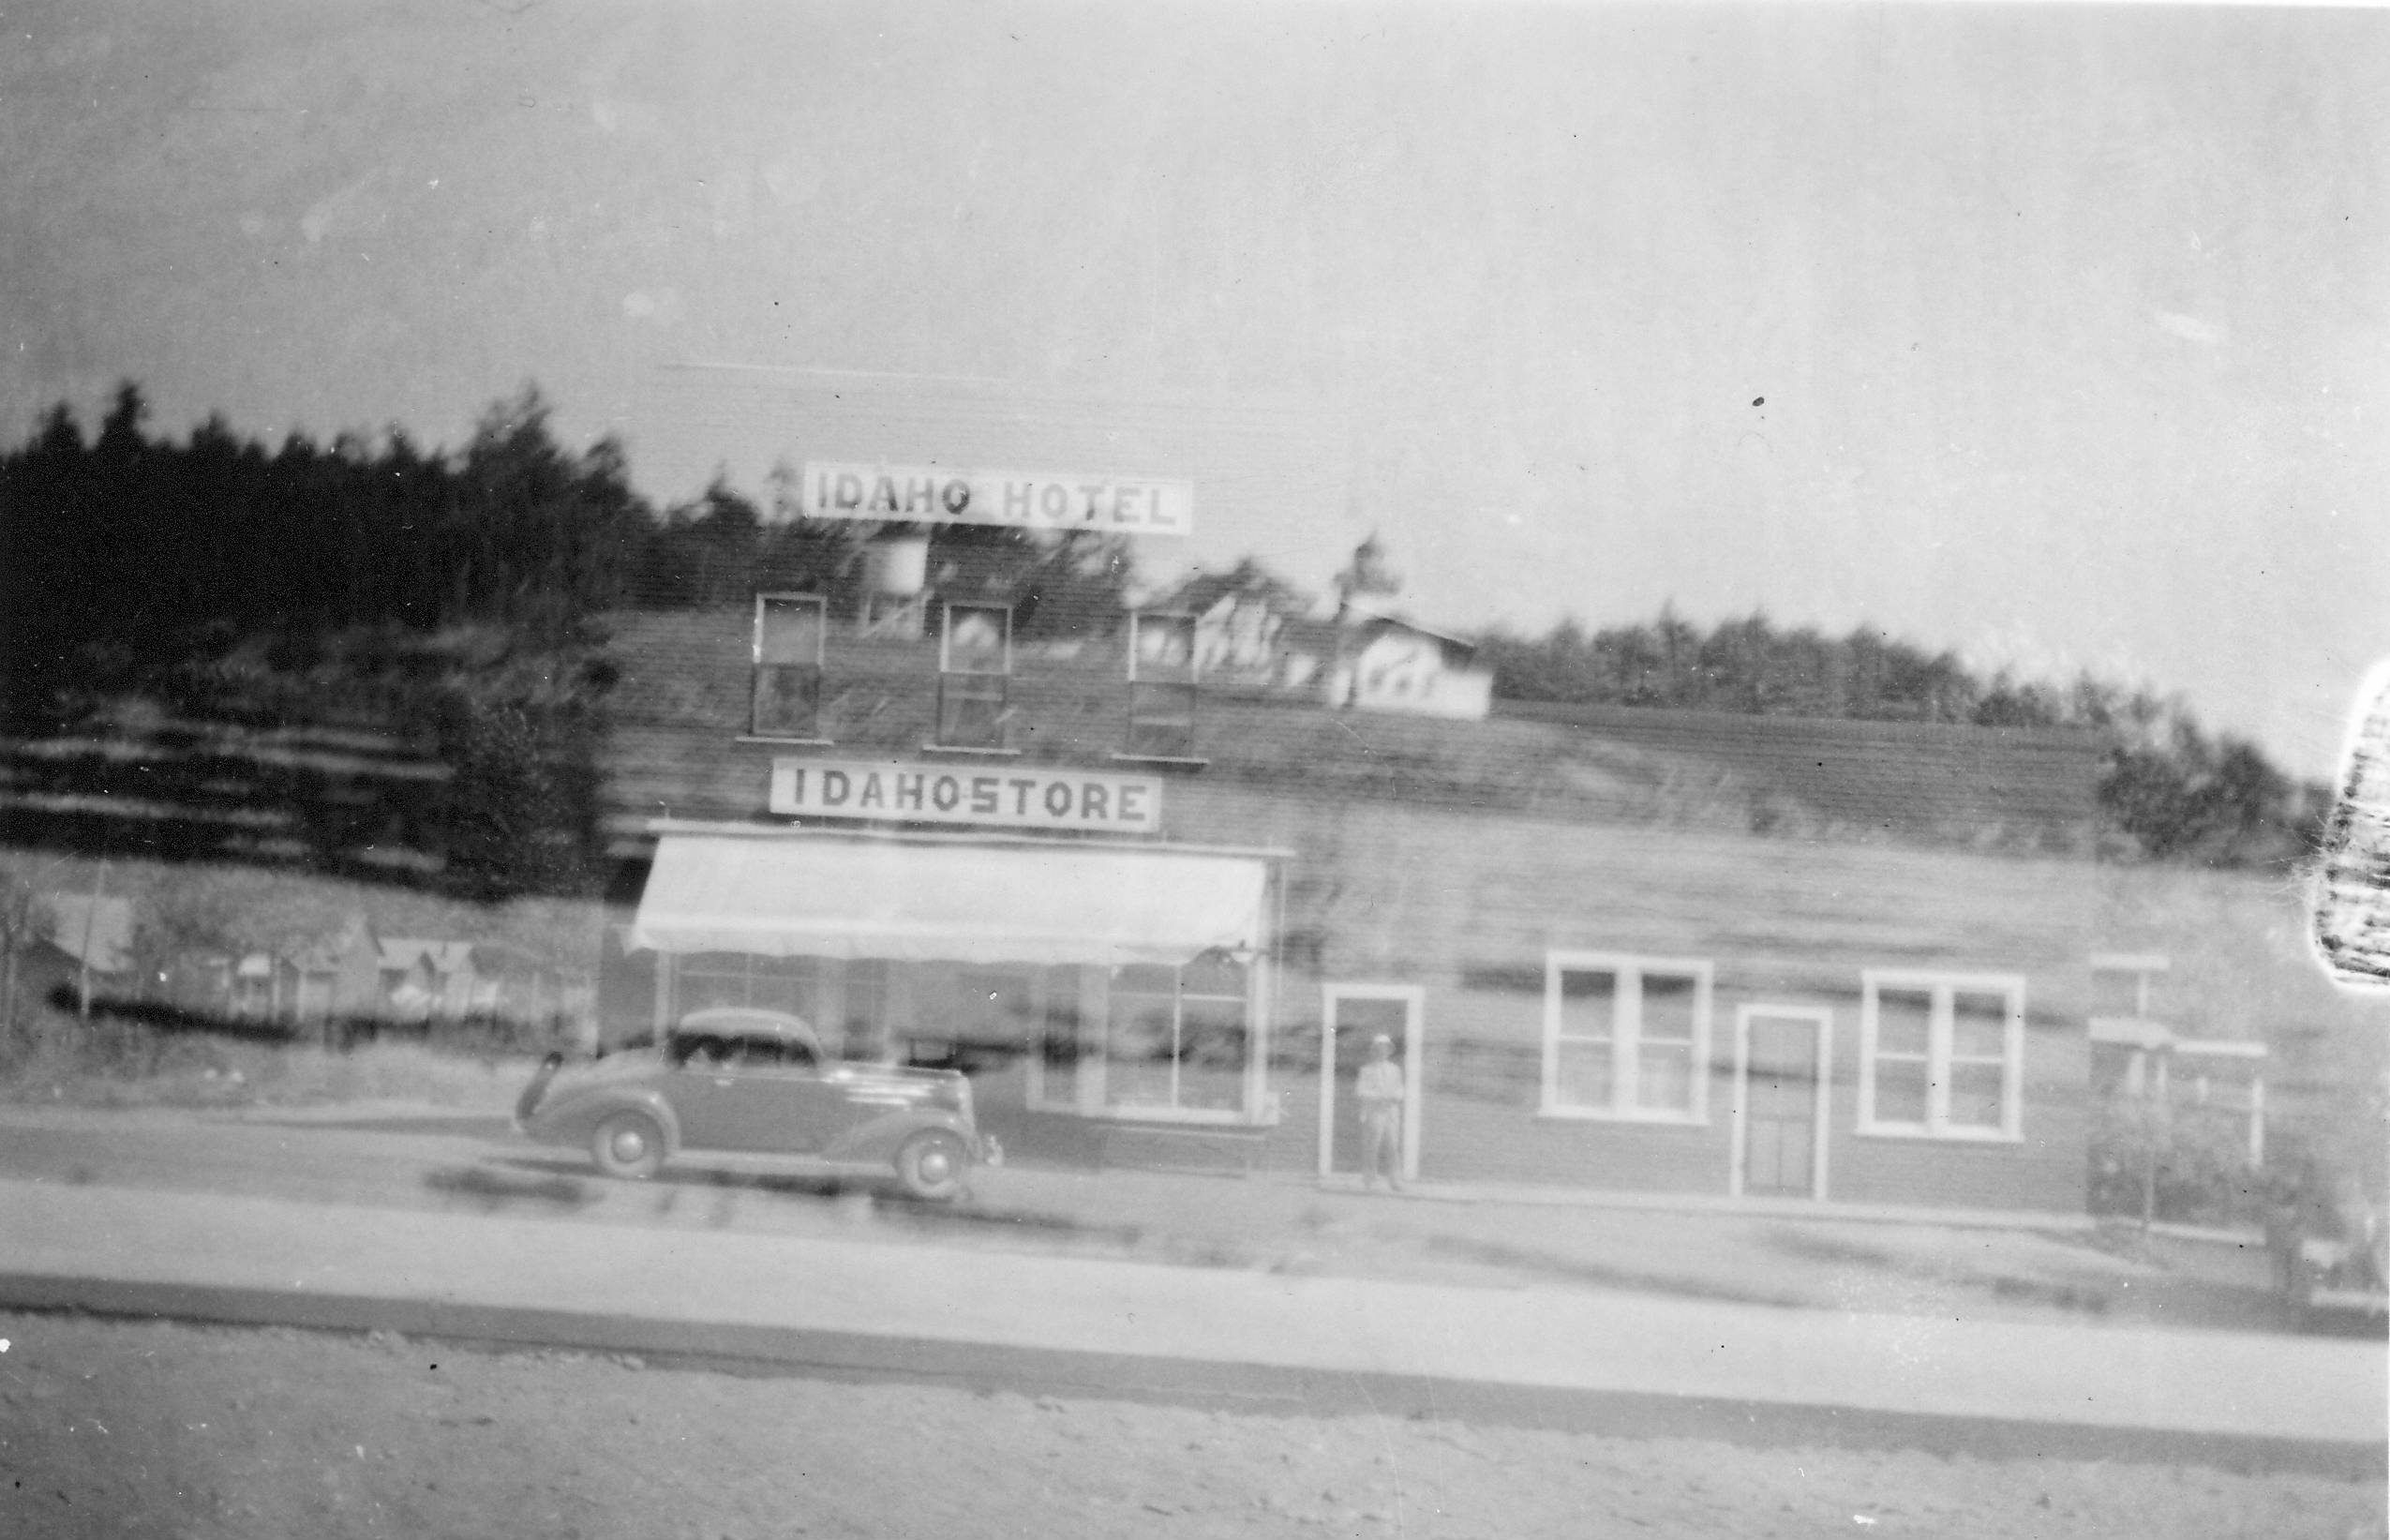 76-BS-TR-1936-9 Double Exposure of Idaho Hotel and Store, 1936